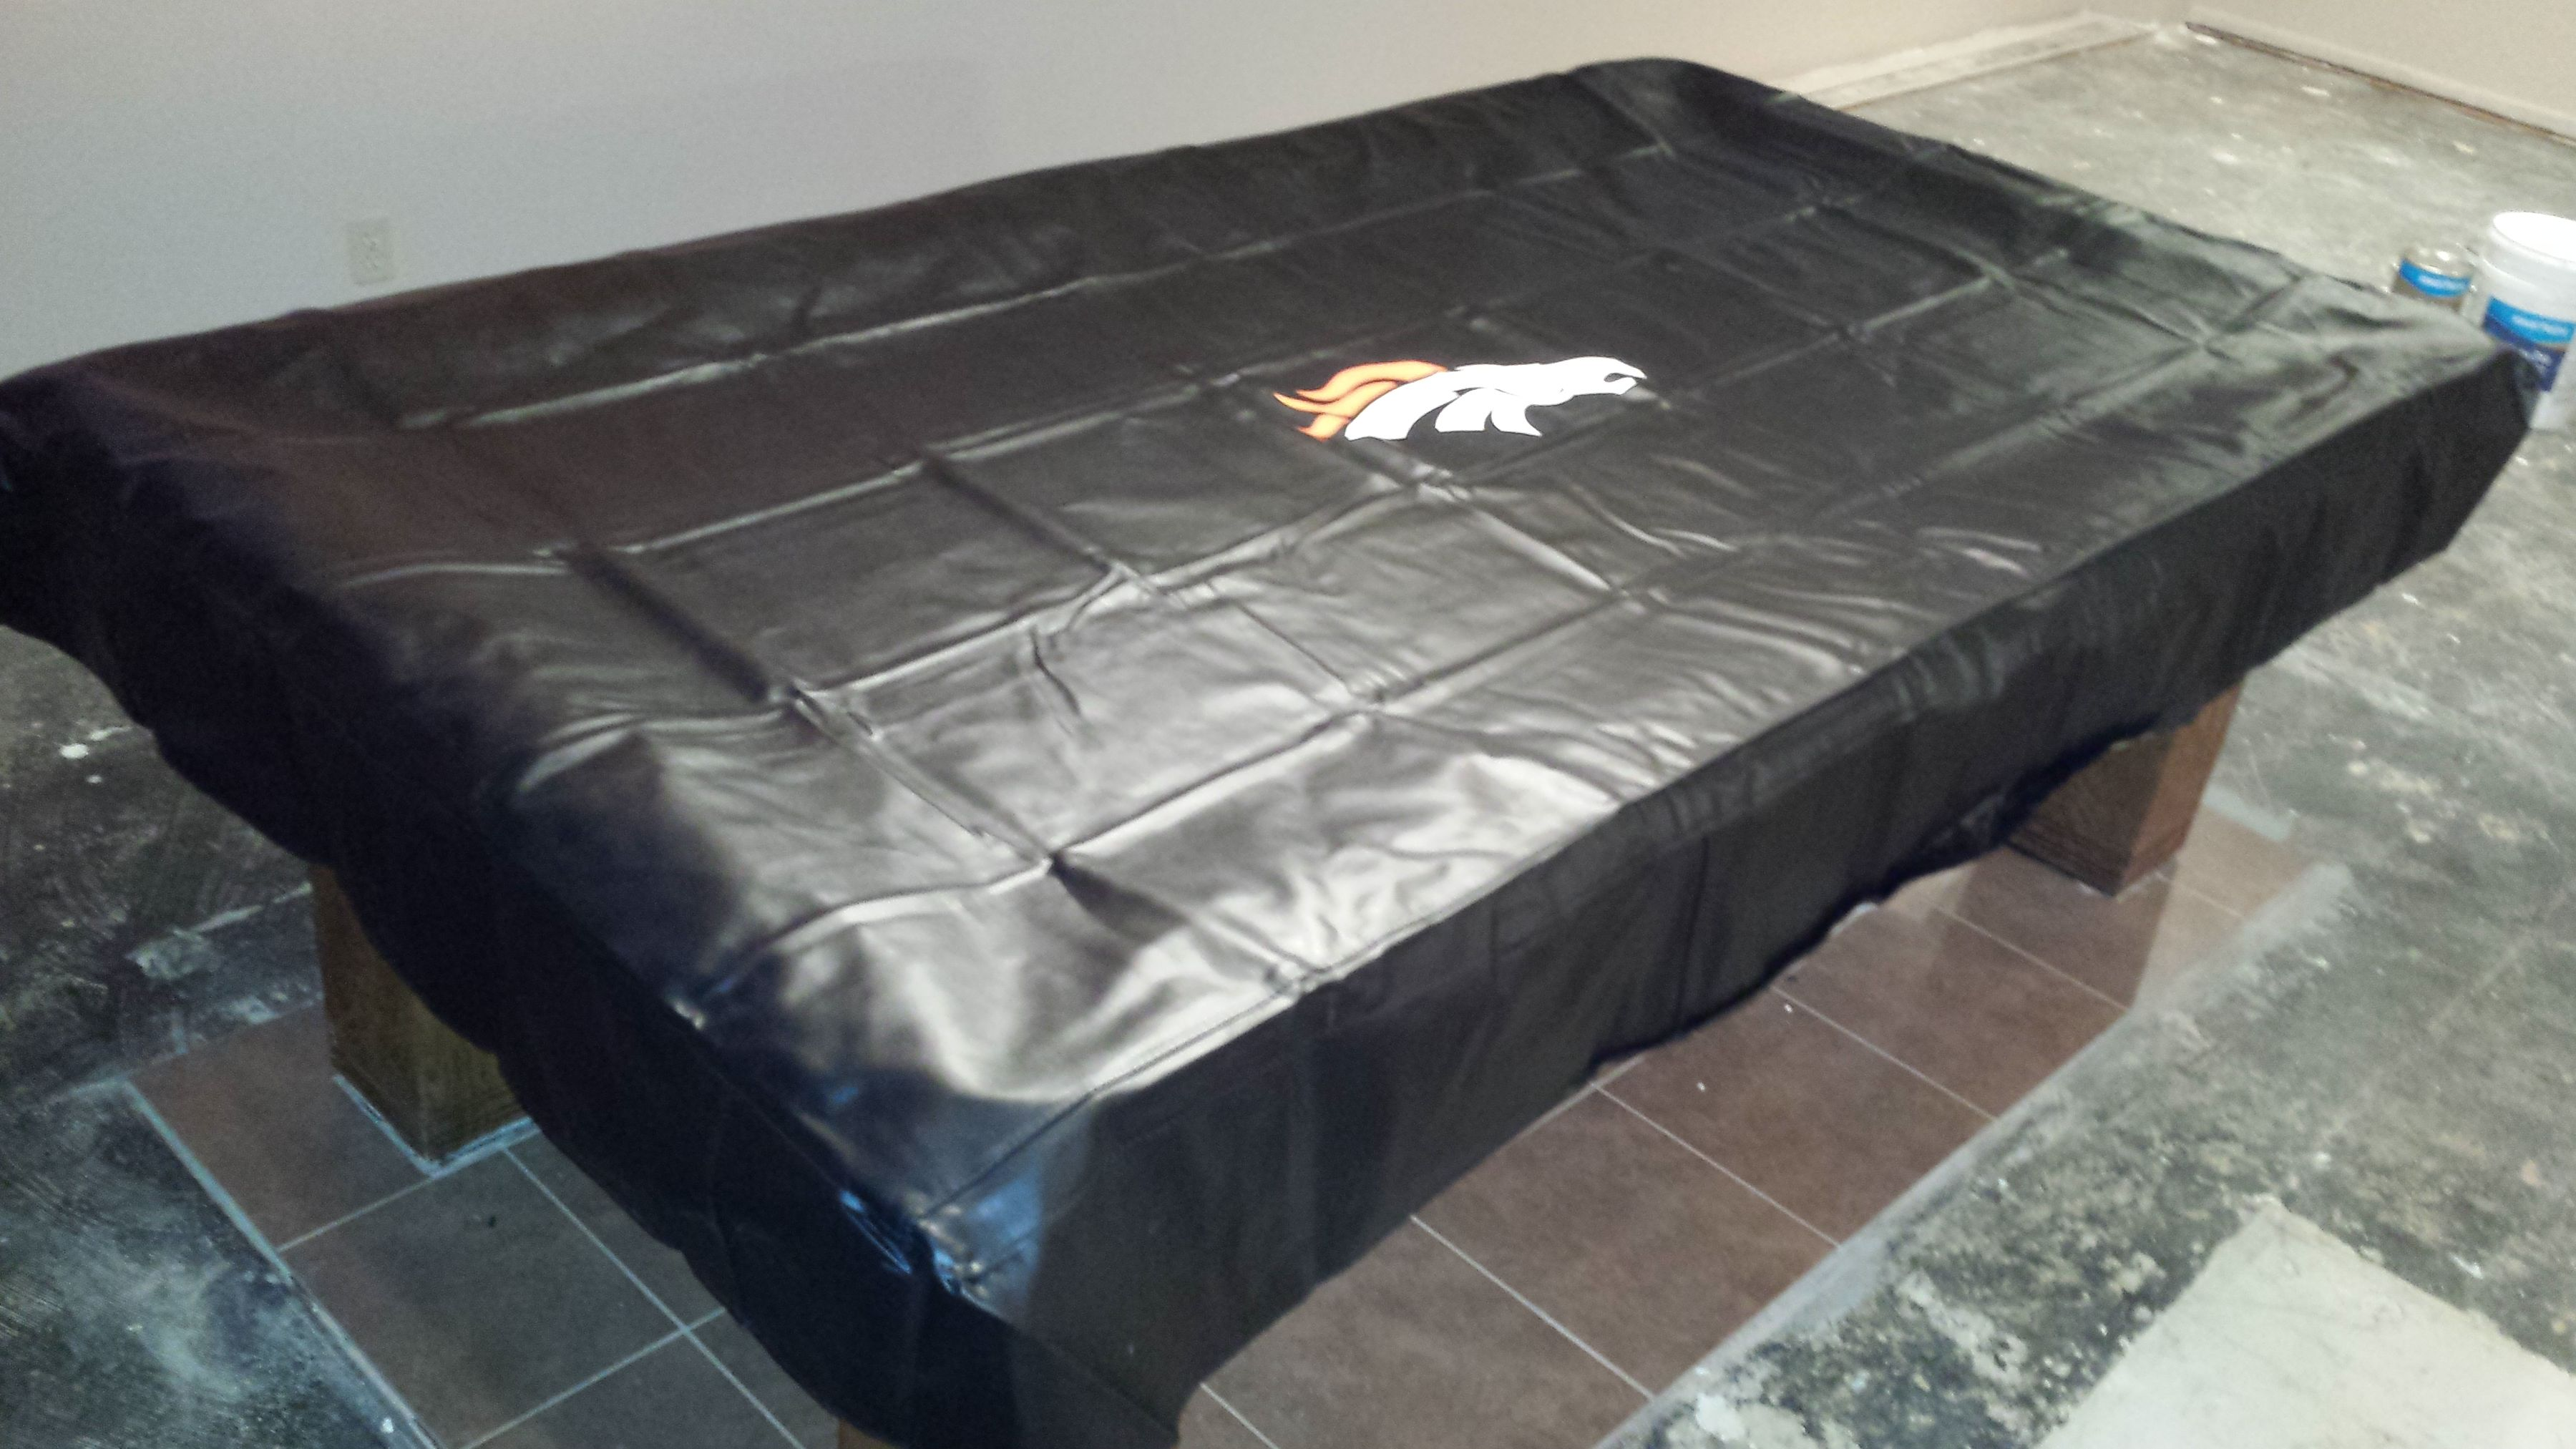 & Denver Broncos pool table cloth on an 8 foot Brunswick pool table.